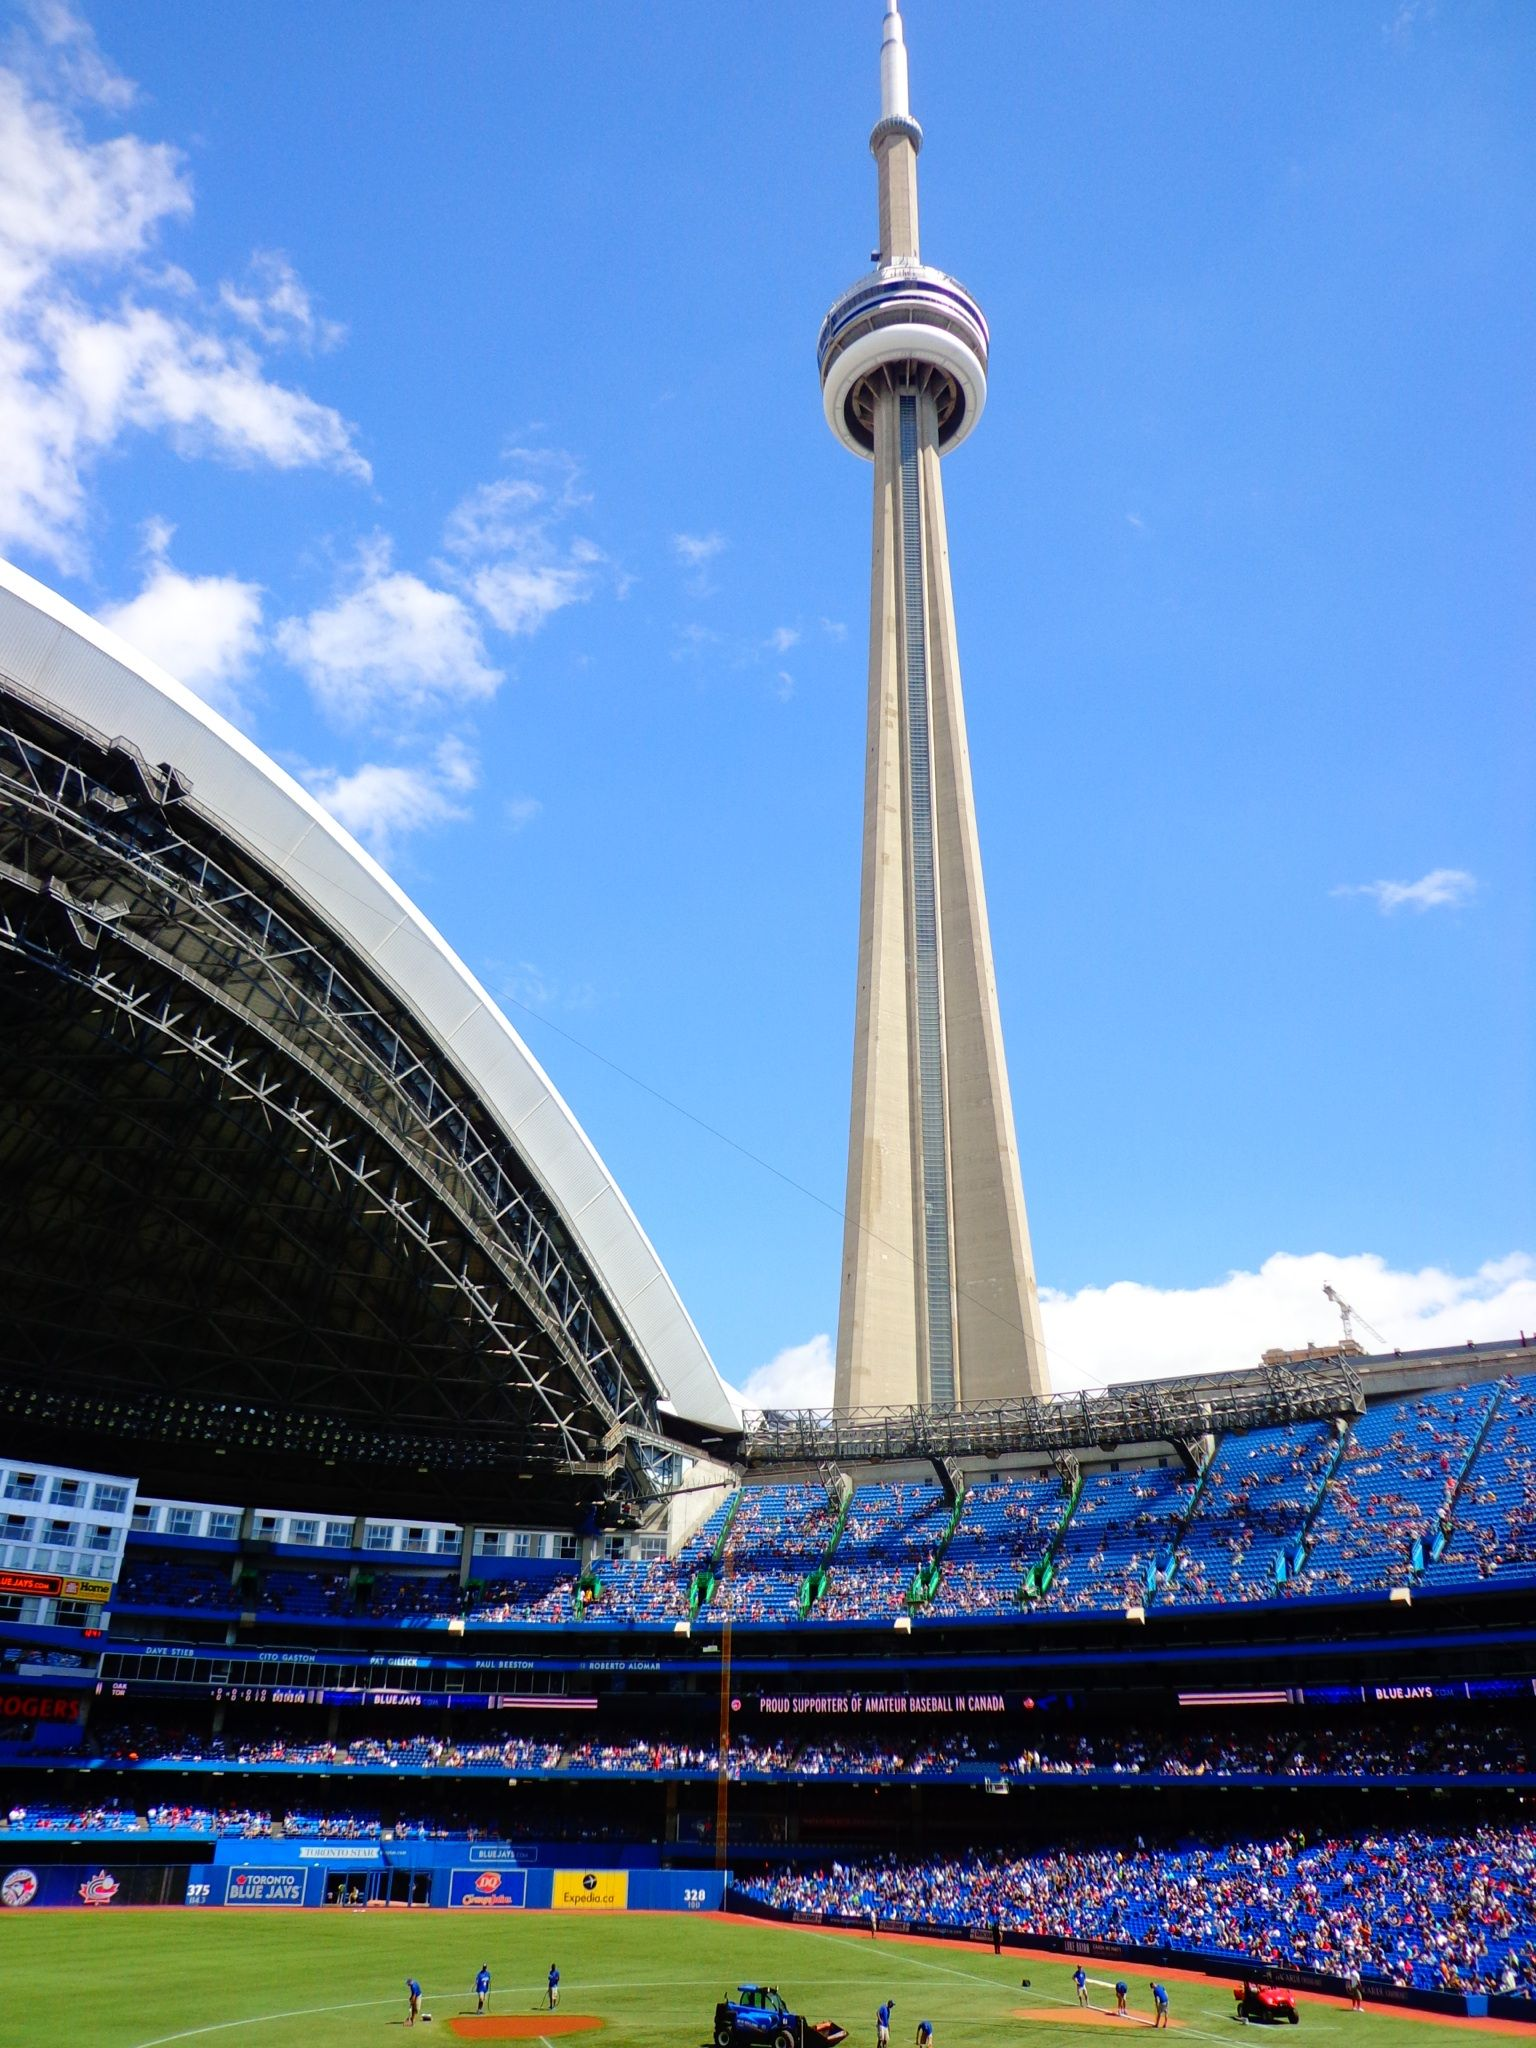 Toronto Rogers Centre Cn Tower Travel Diary Pinterest Rogers Centre Cn Tower And Centre